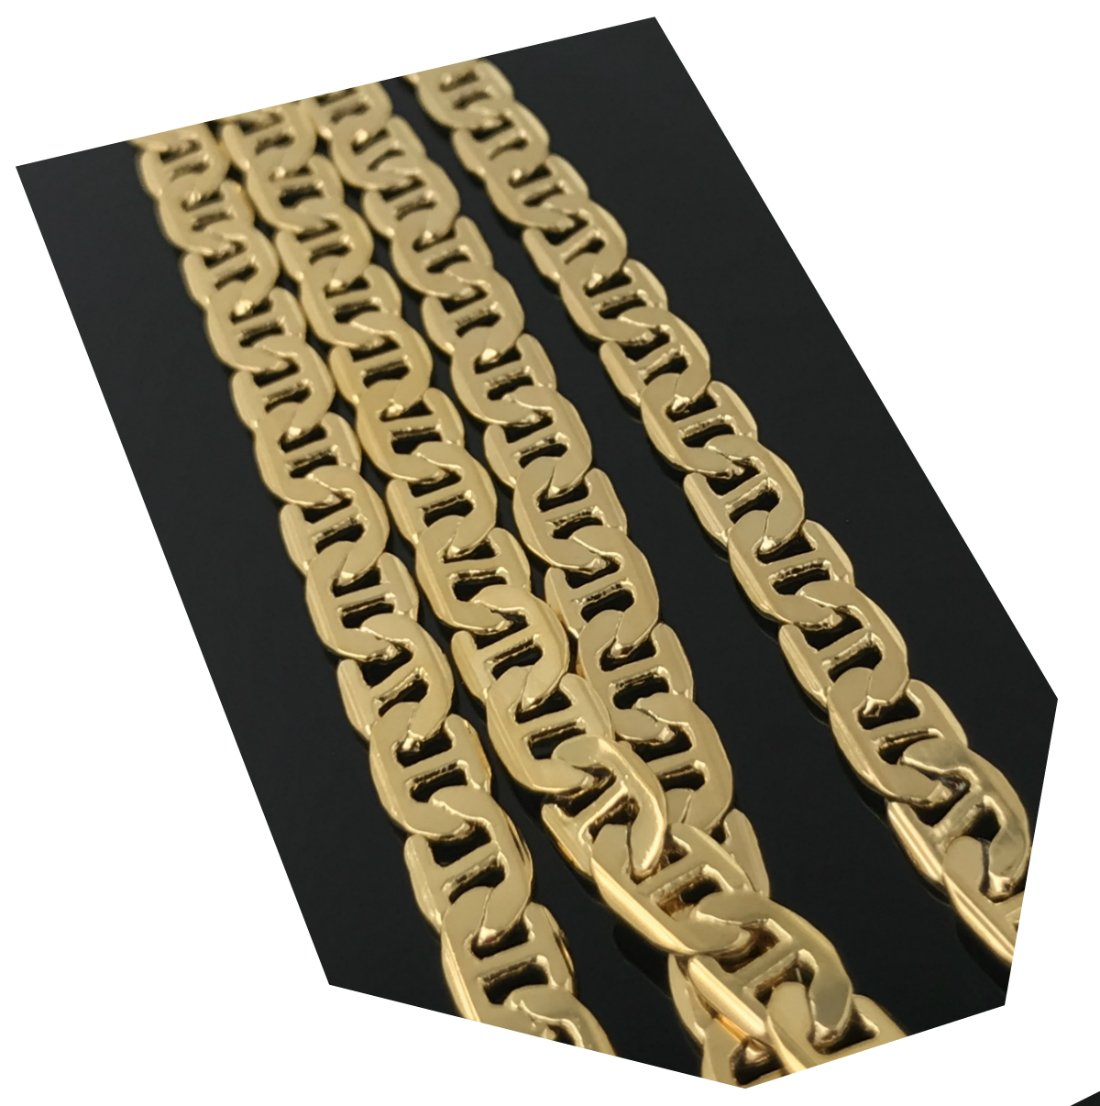 Gold chain necklace 8MM 18K Diamond cut Smooth Marina Chain with a Warrantied, USA made! (27)